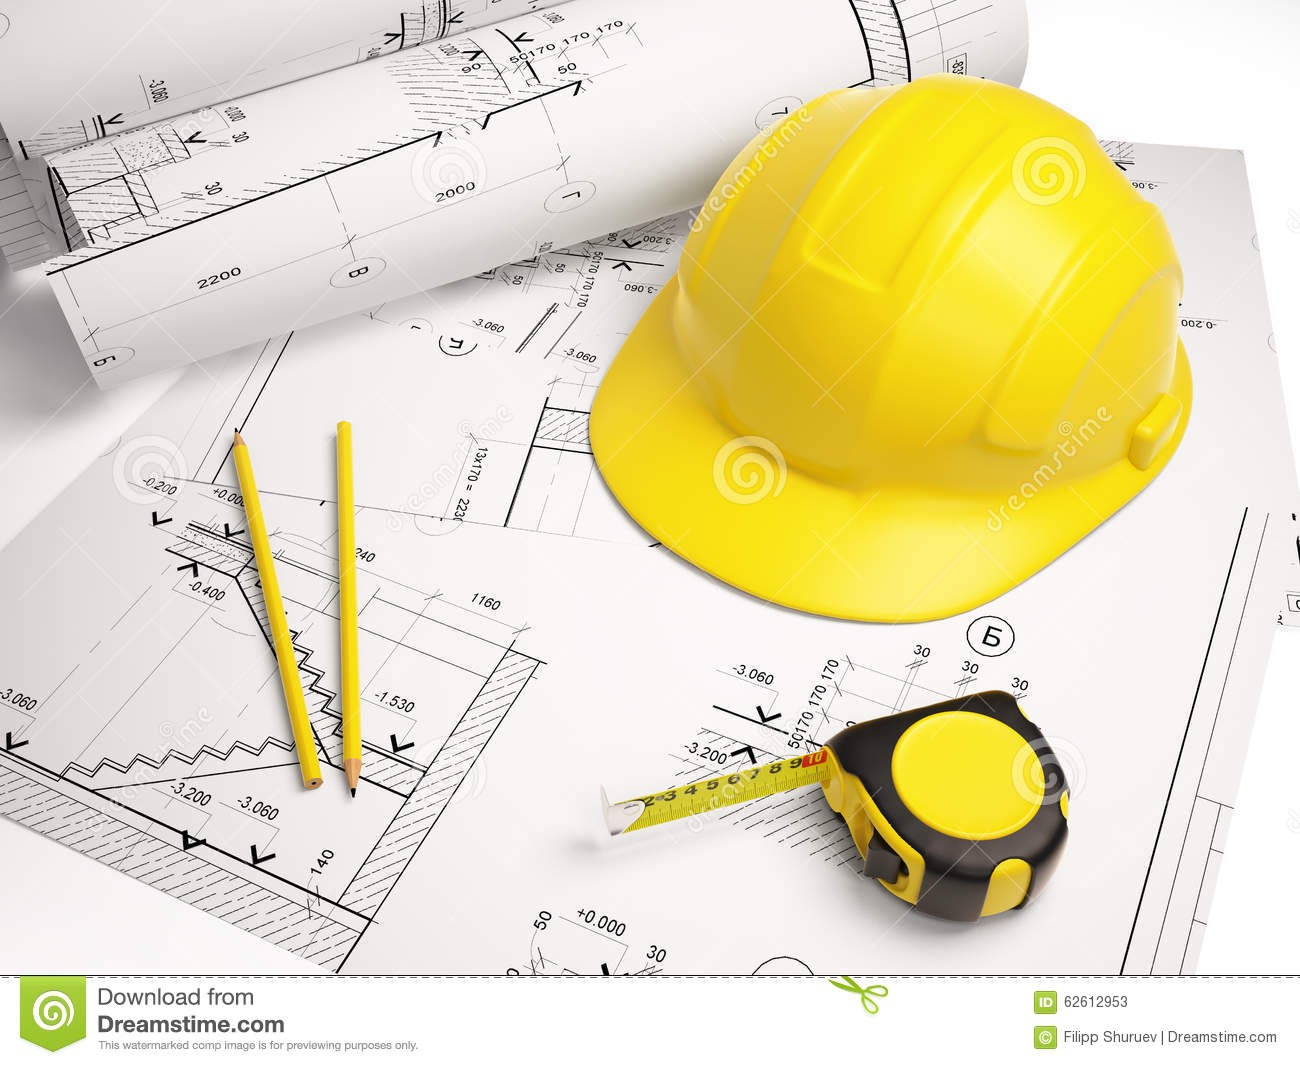 how to read civil construction drawings